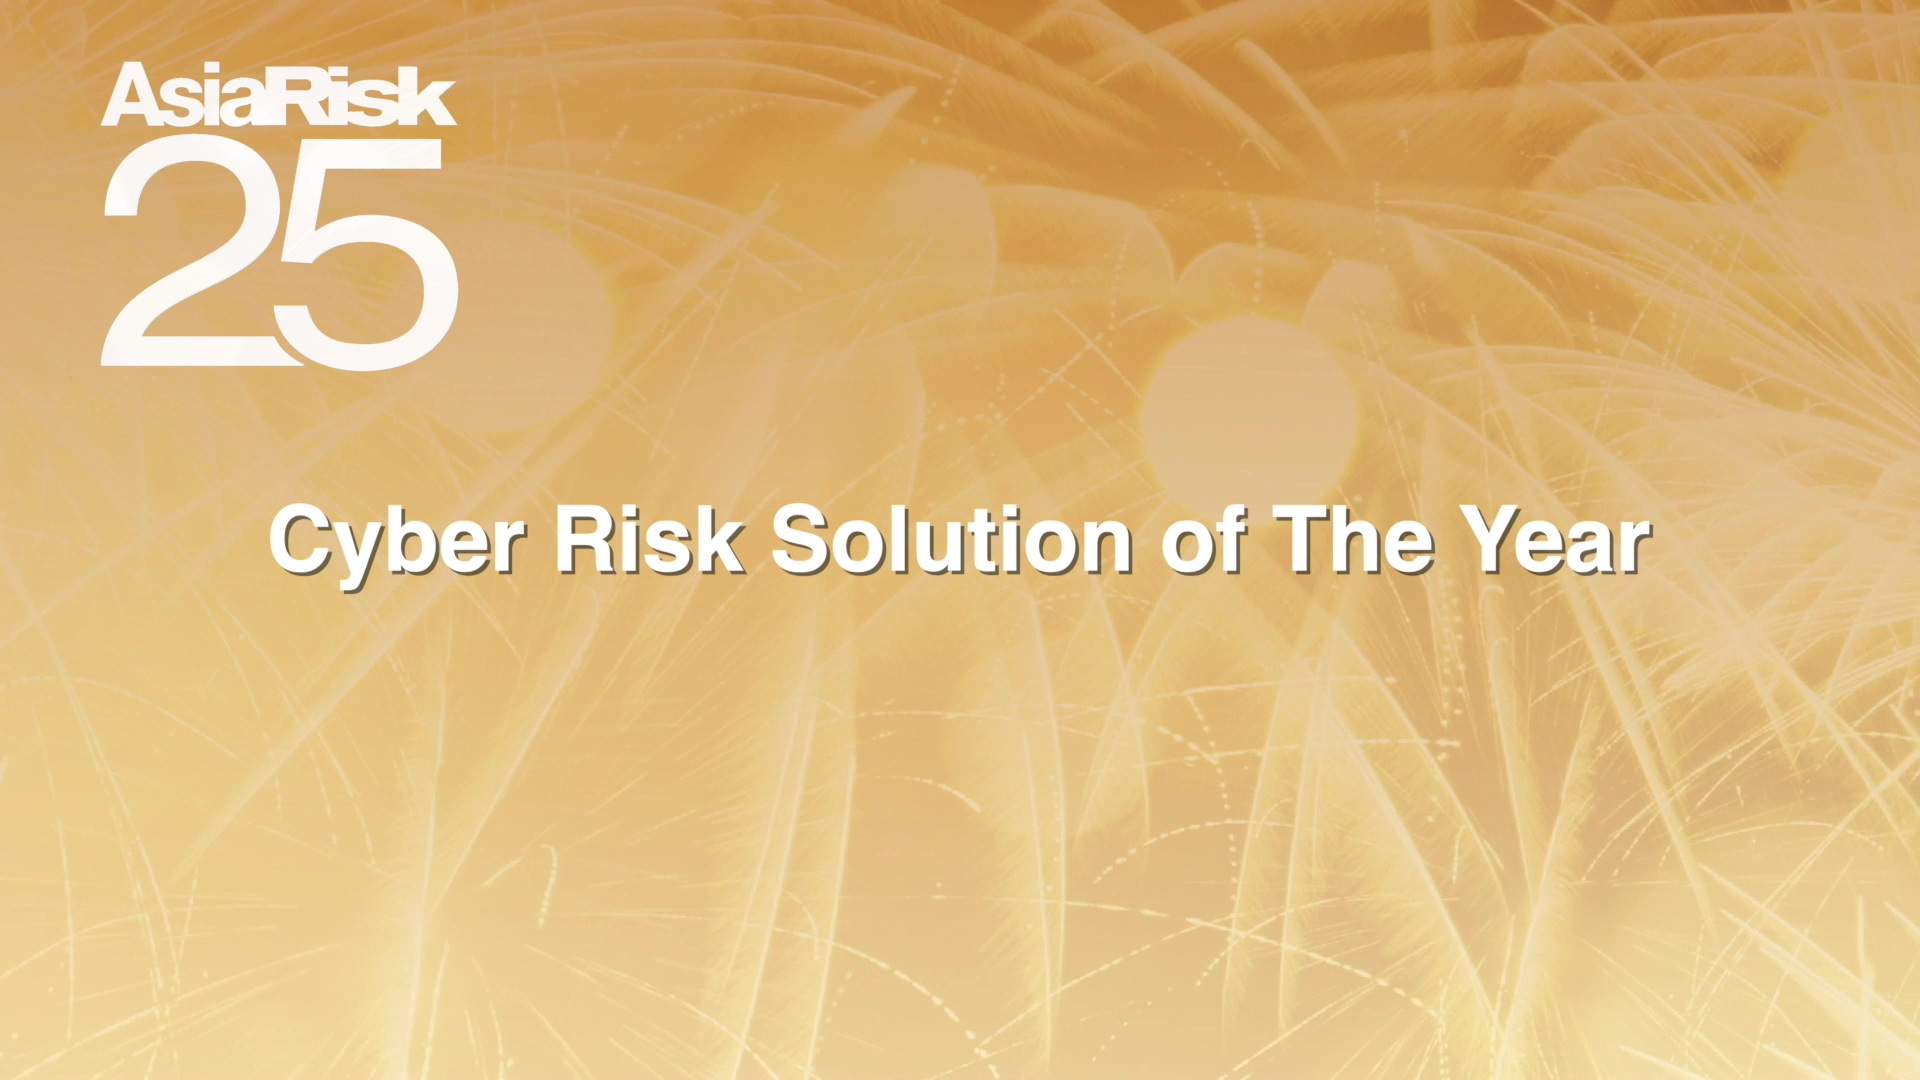 GBG - Cyber Risk Solution of The Year